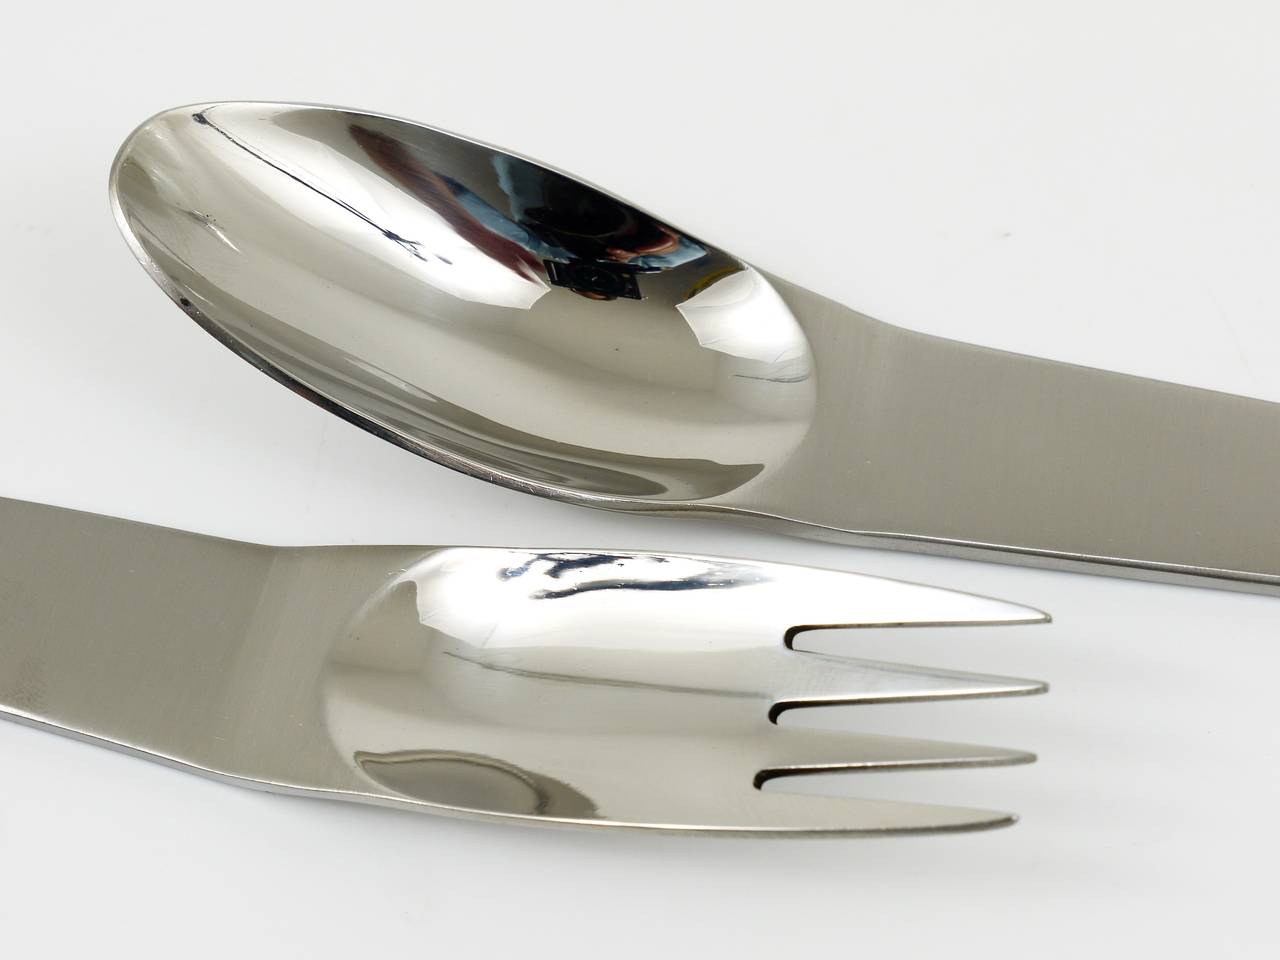 Stainless Steel Austrian Modernist Flatware 2060 by Carl Aubock, Amboss Austria, 1950s For Sale